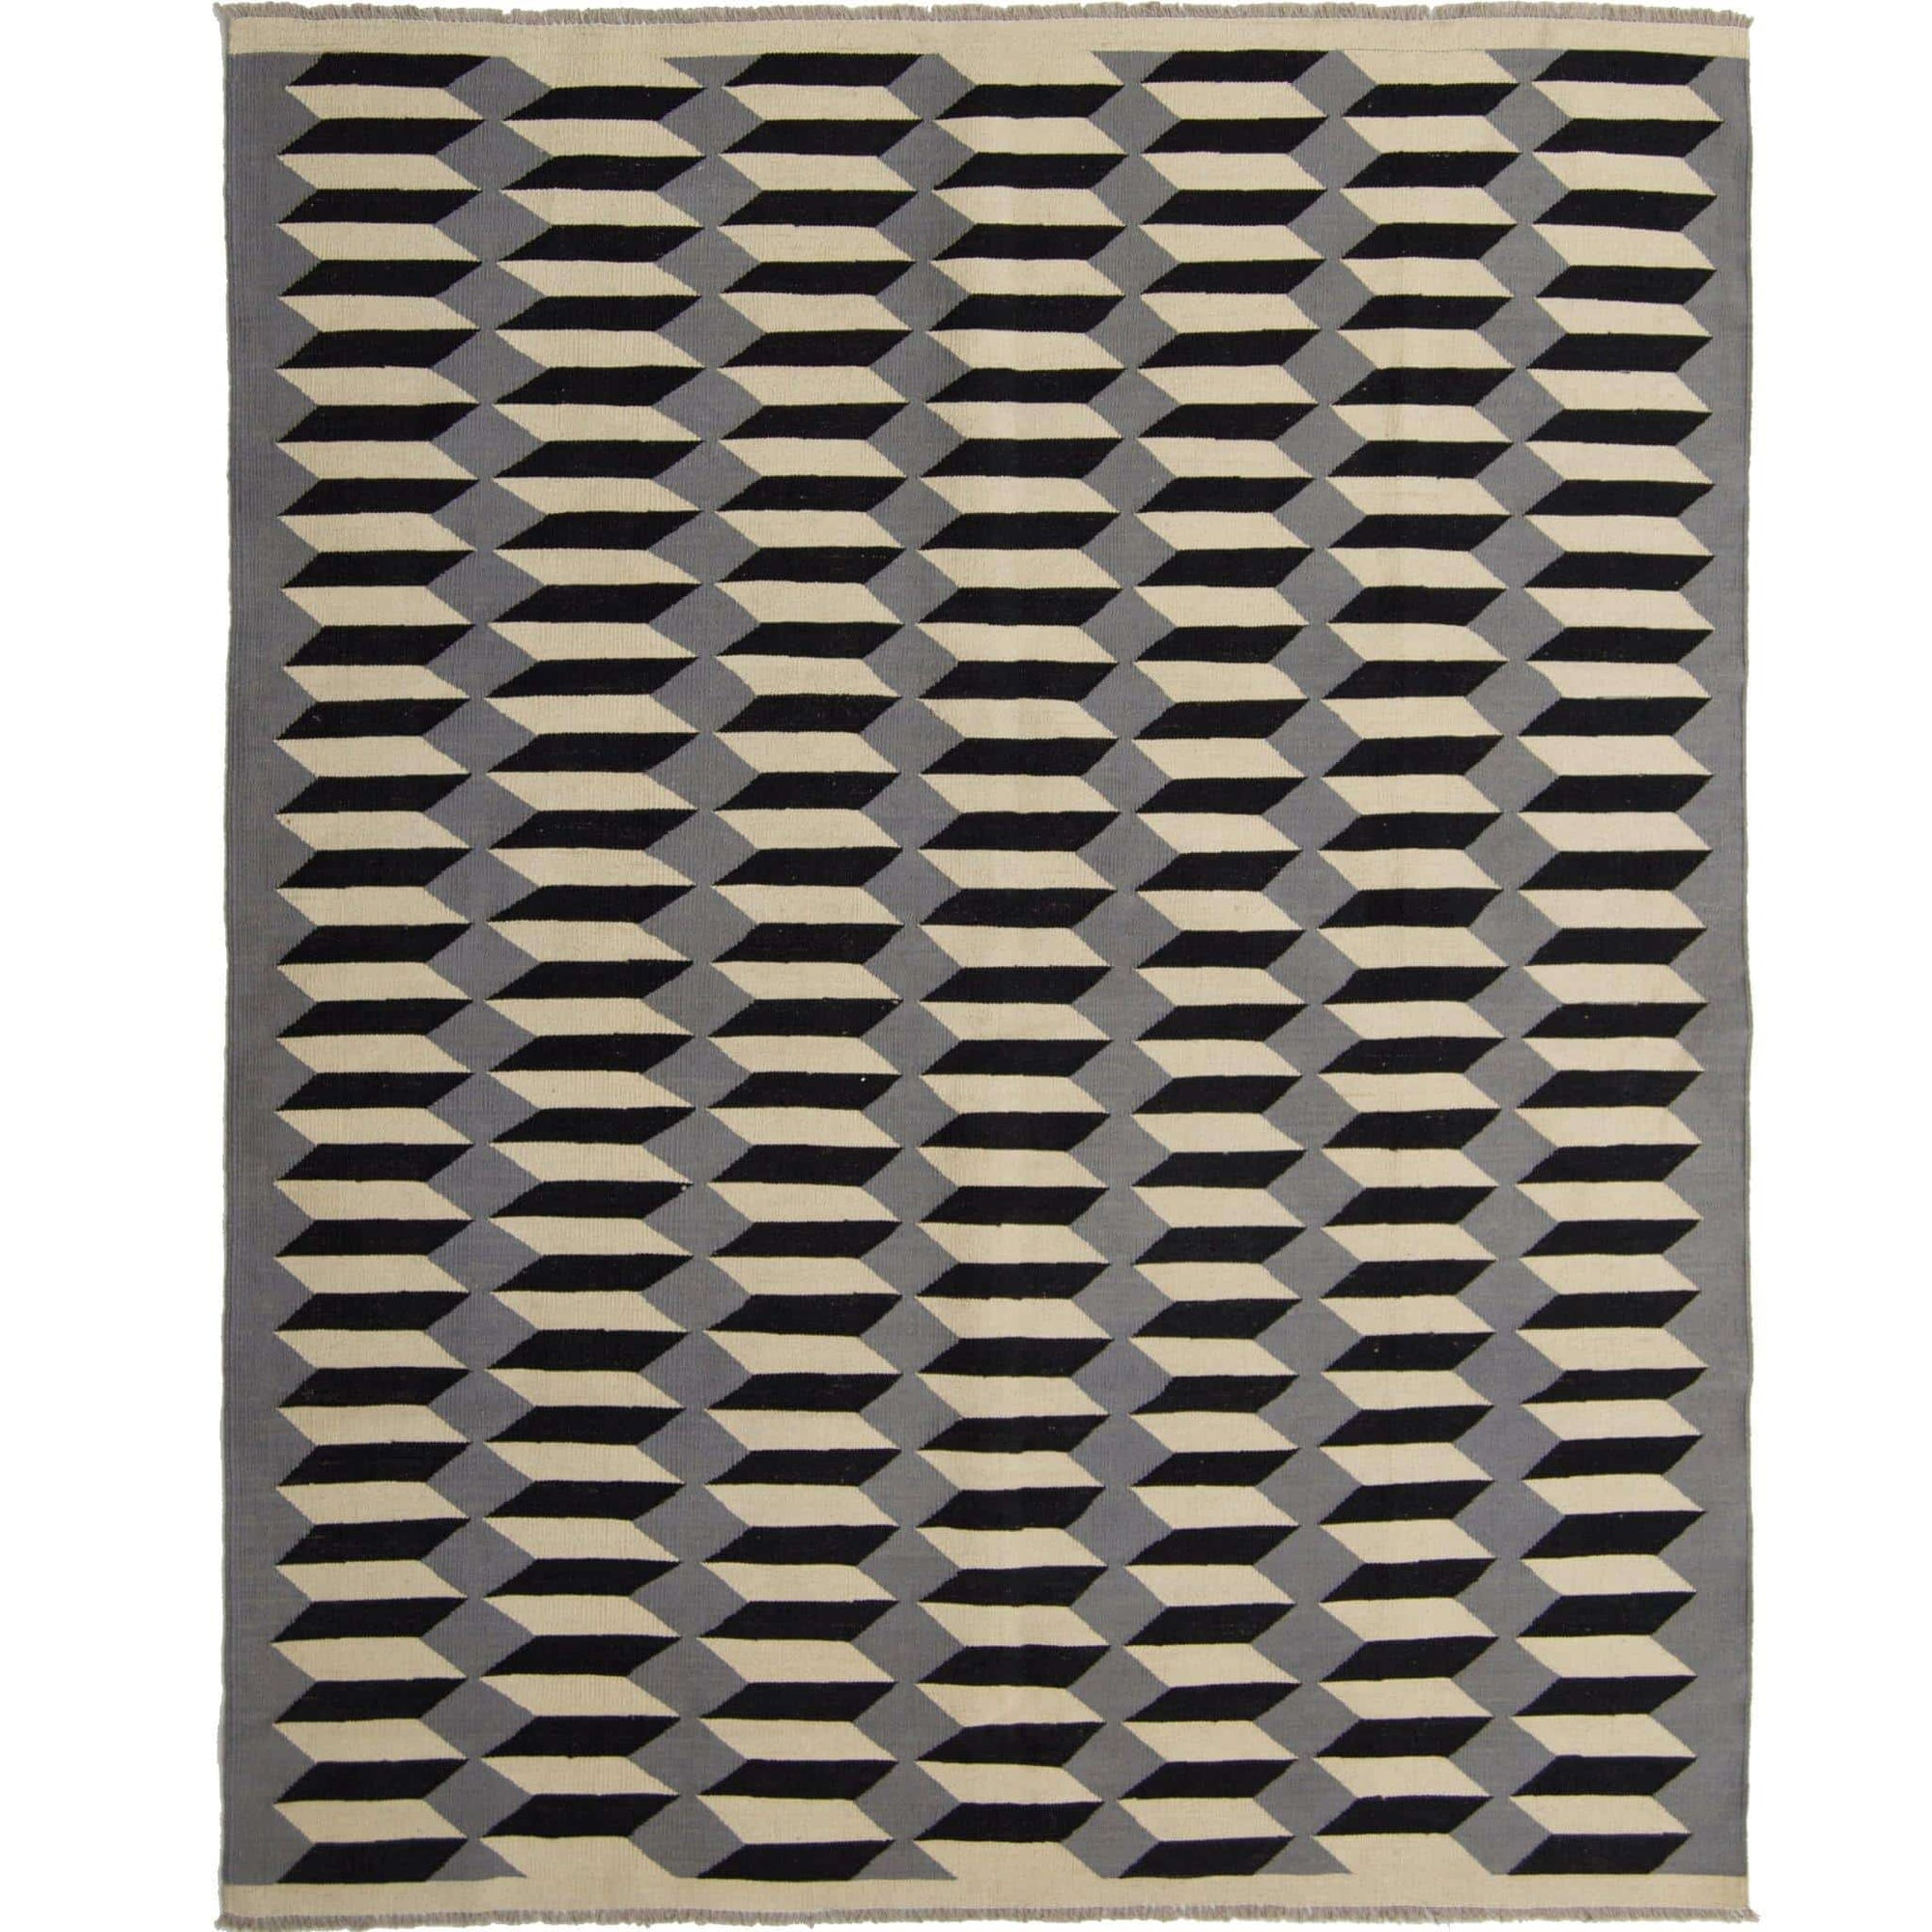 Moden Hand-woven 100% Wool Chobi Kilim Rug 193cm x 245cm Persian-Rug | House-of-Haghi | NewMarket | Auckland | NZ | Handmade Persian Rugs | Hand Knotted Persian Rugs